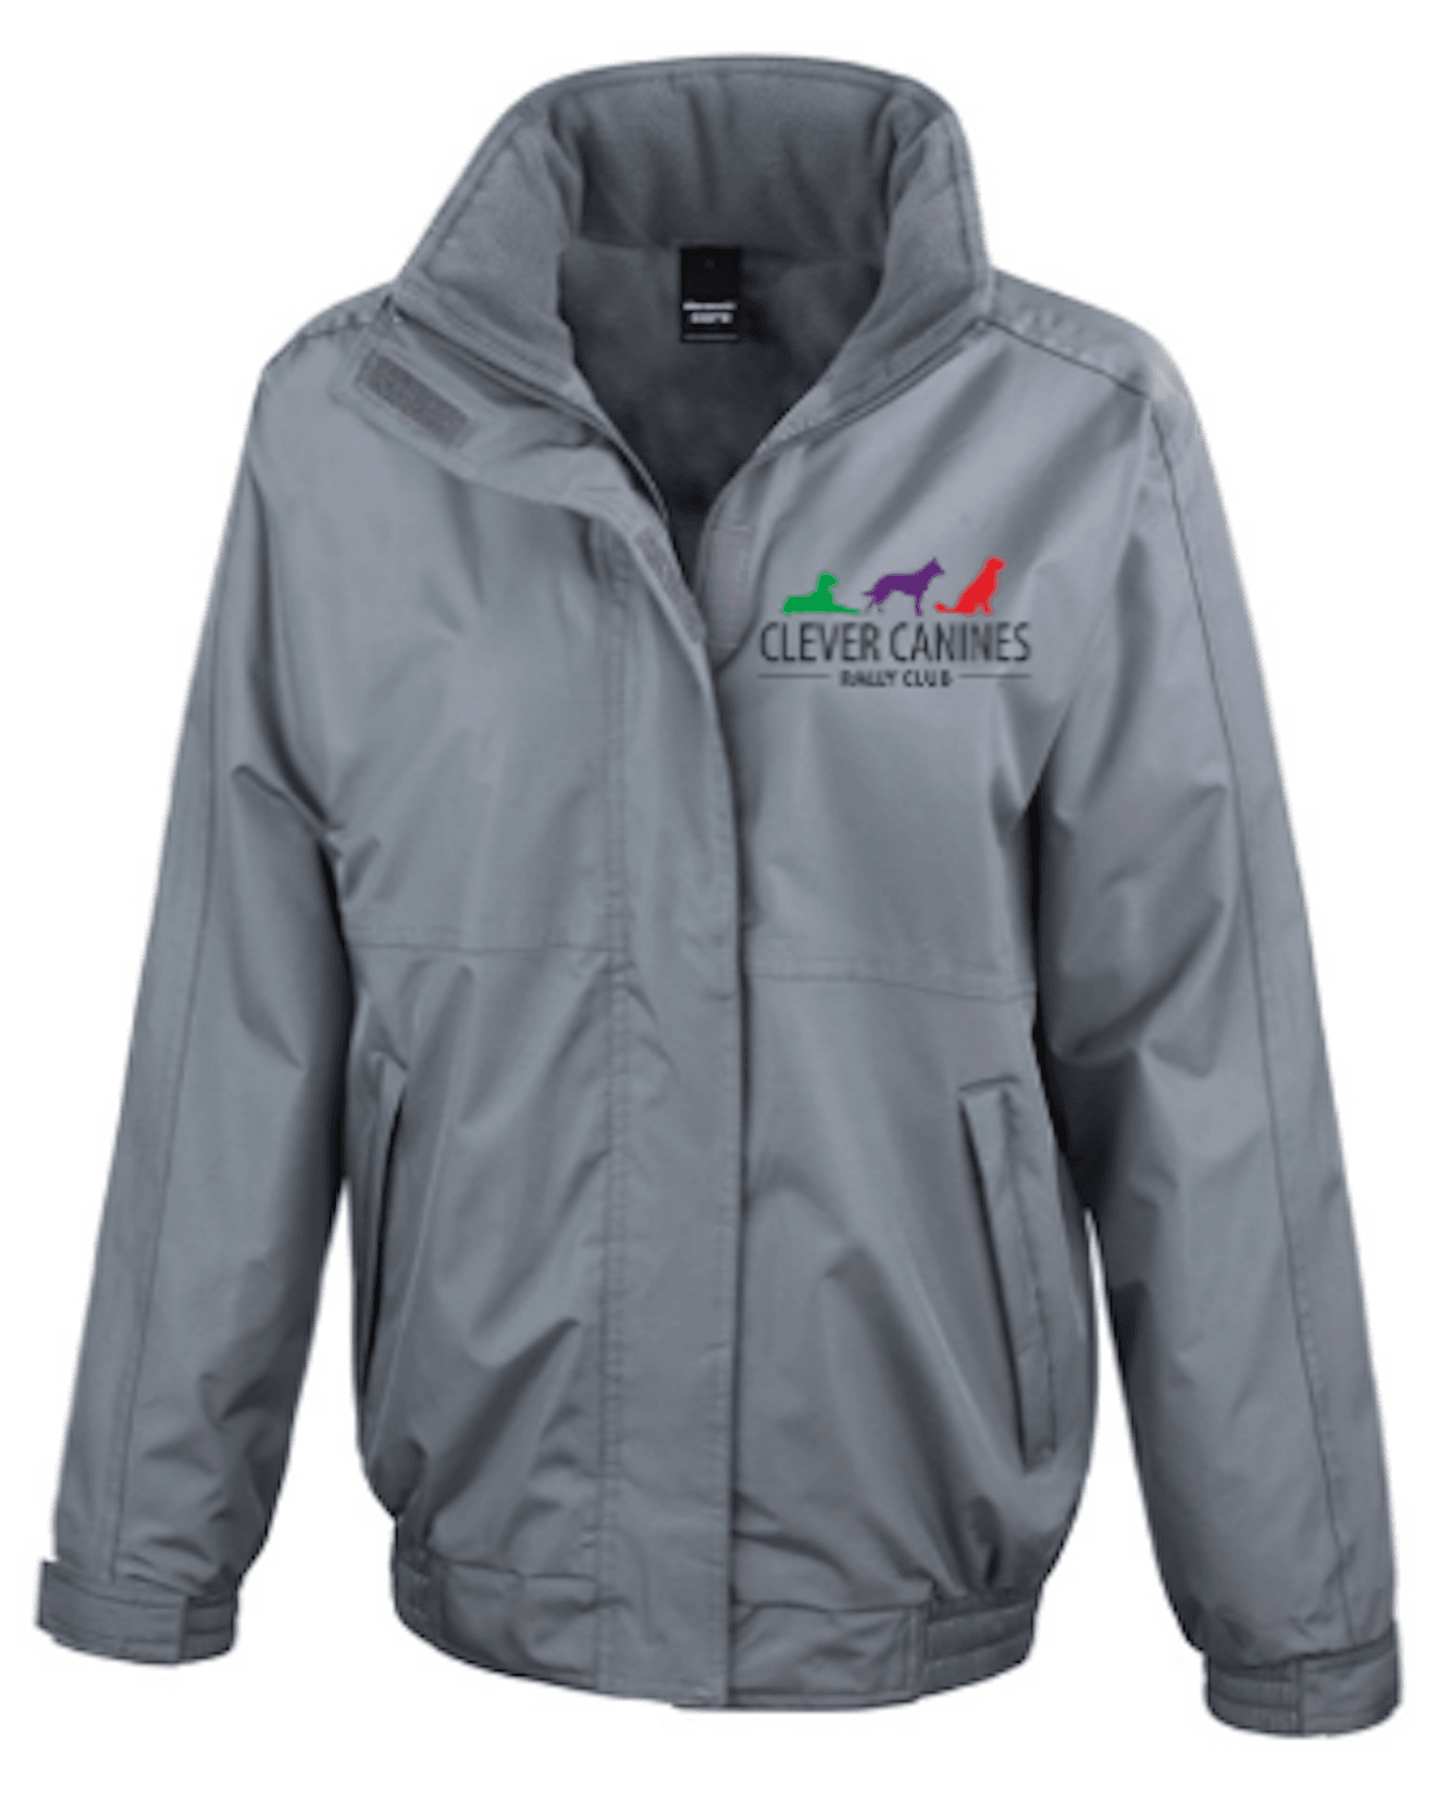 Clever Canines Rally Club – Women's Core Channel Jacket